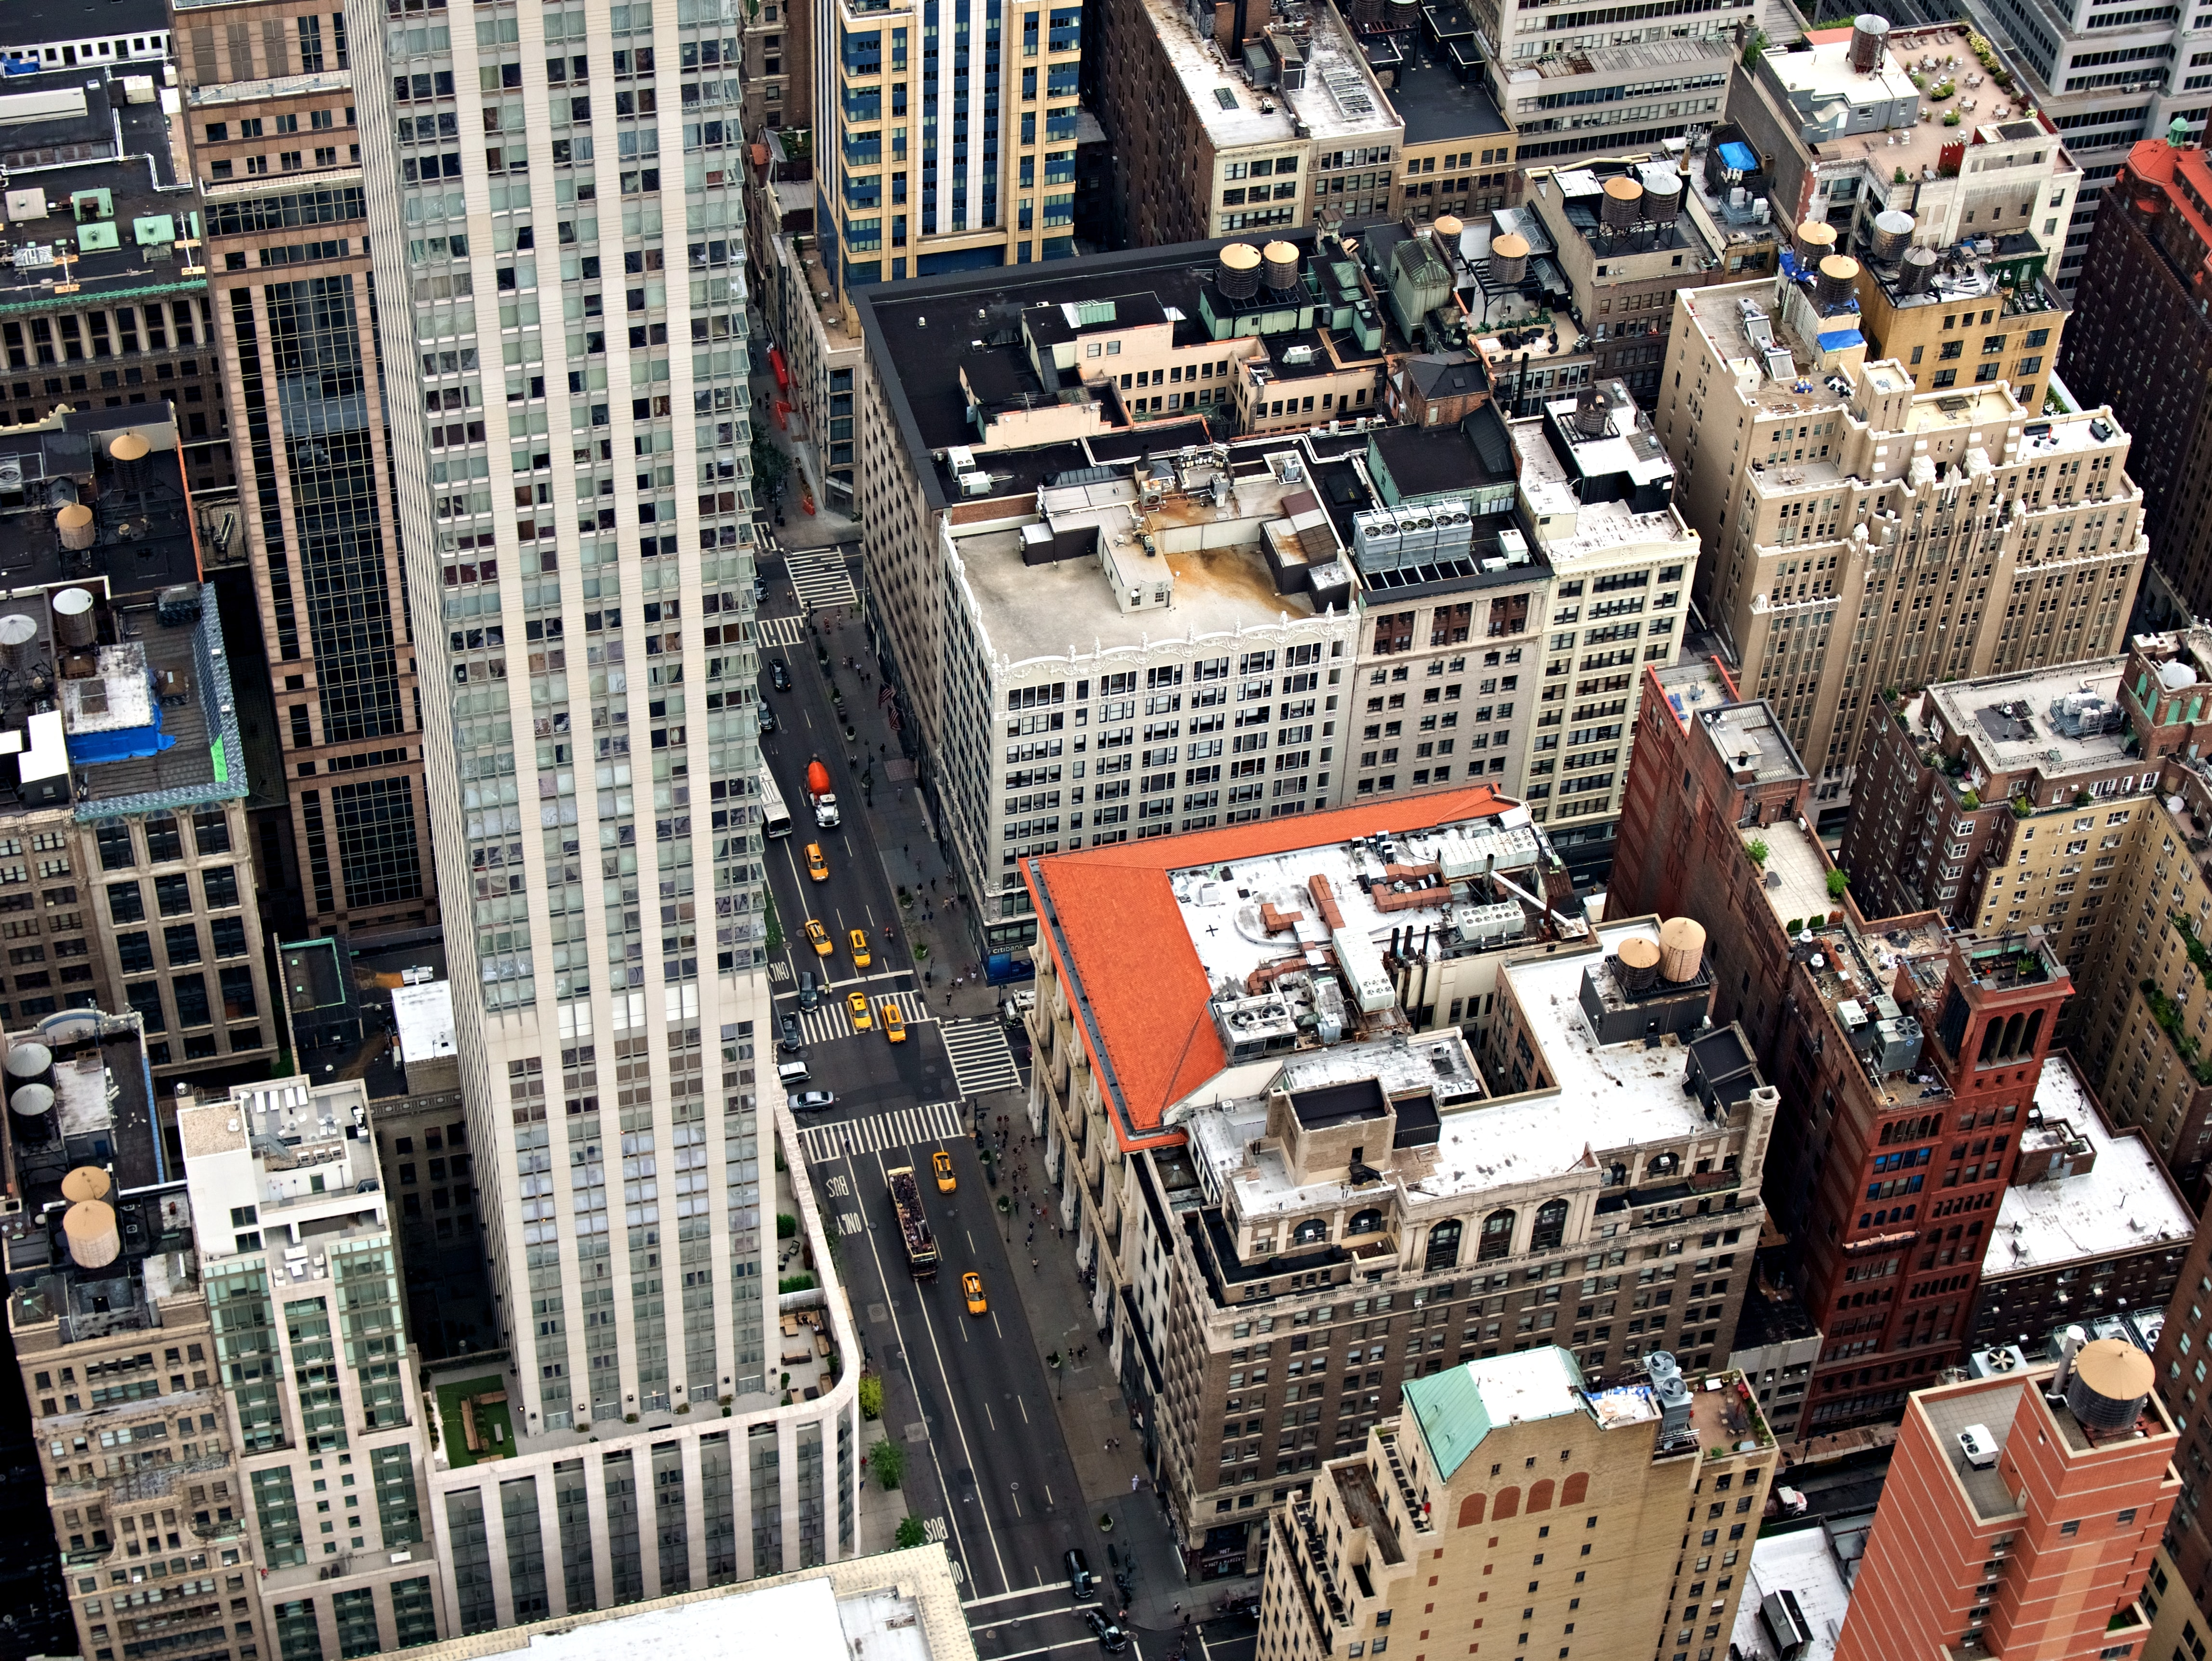 Empire State Building surrounded by highrises